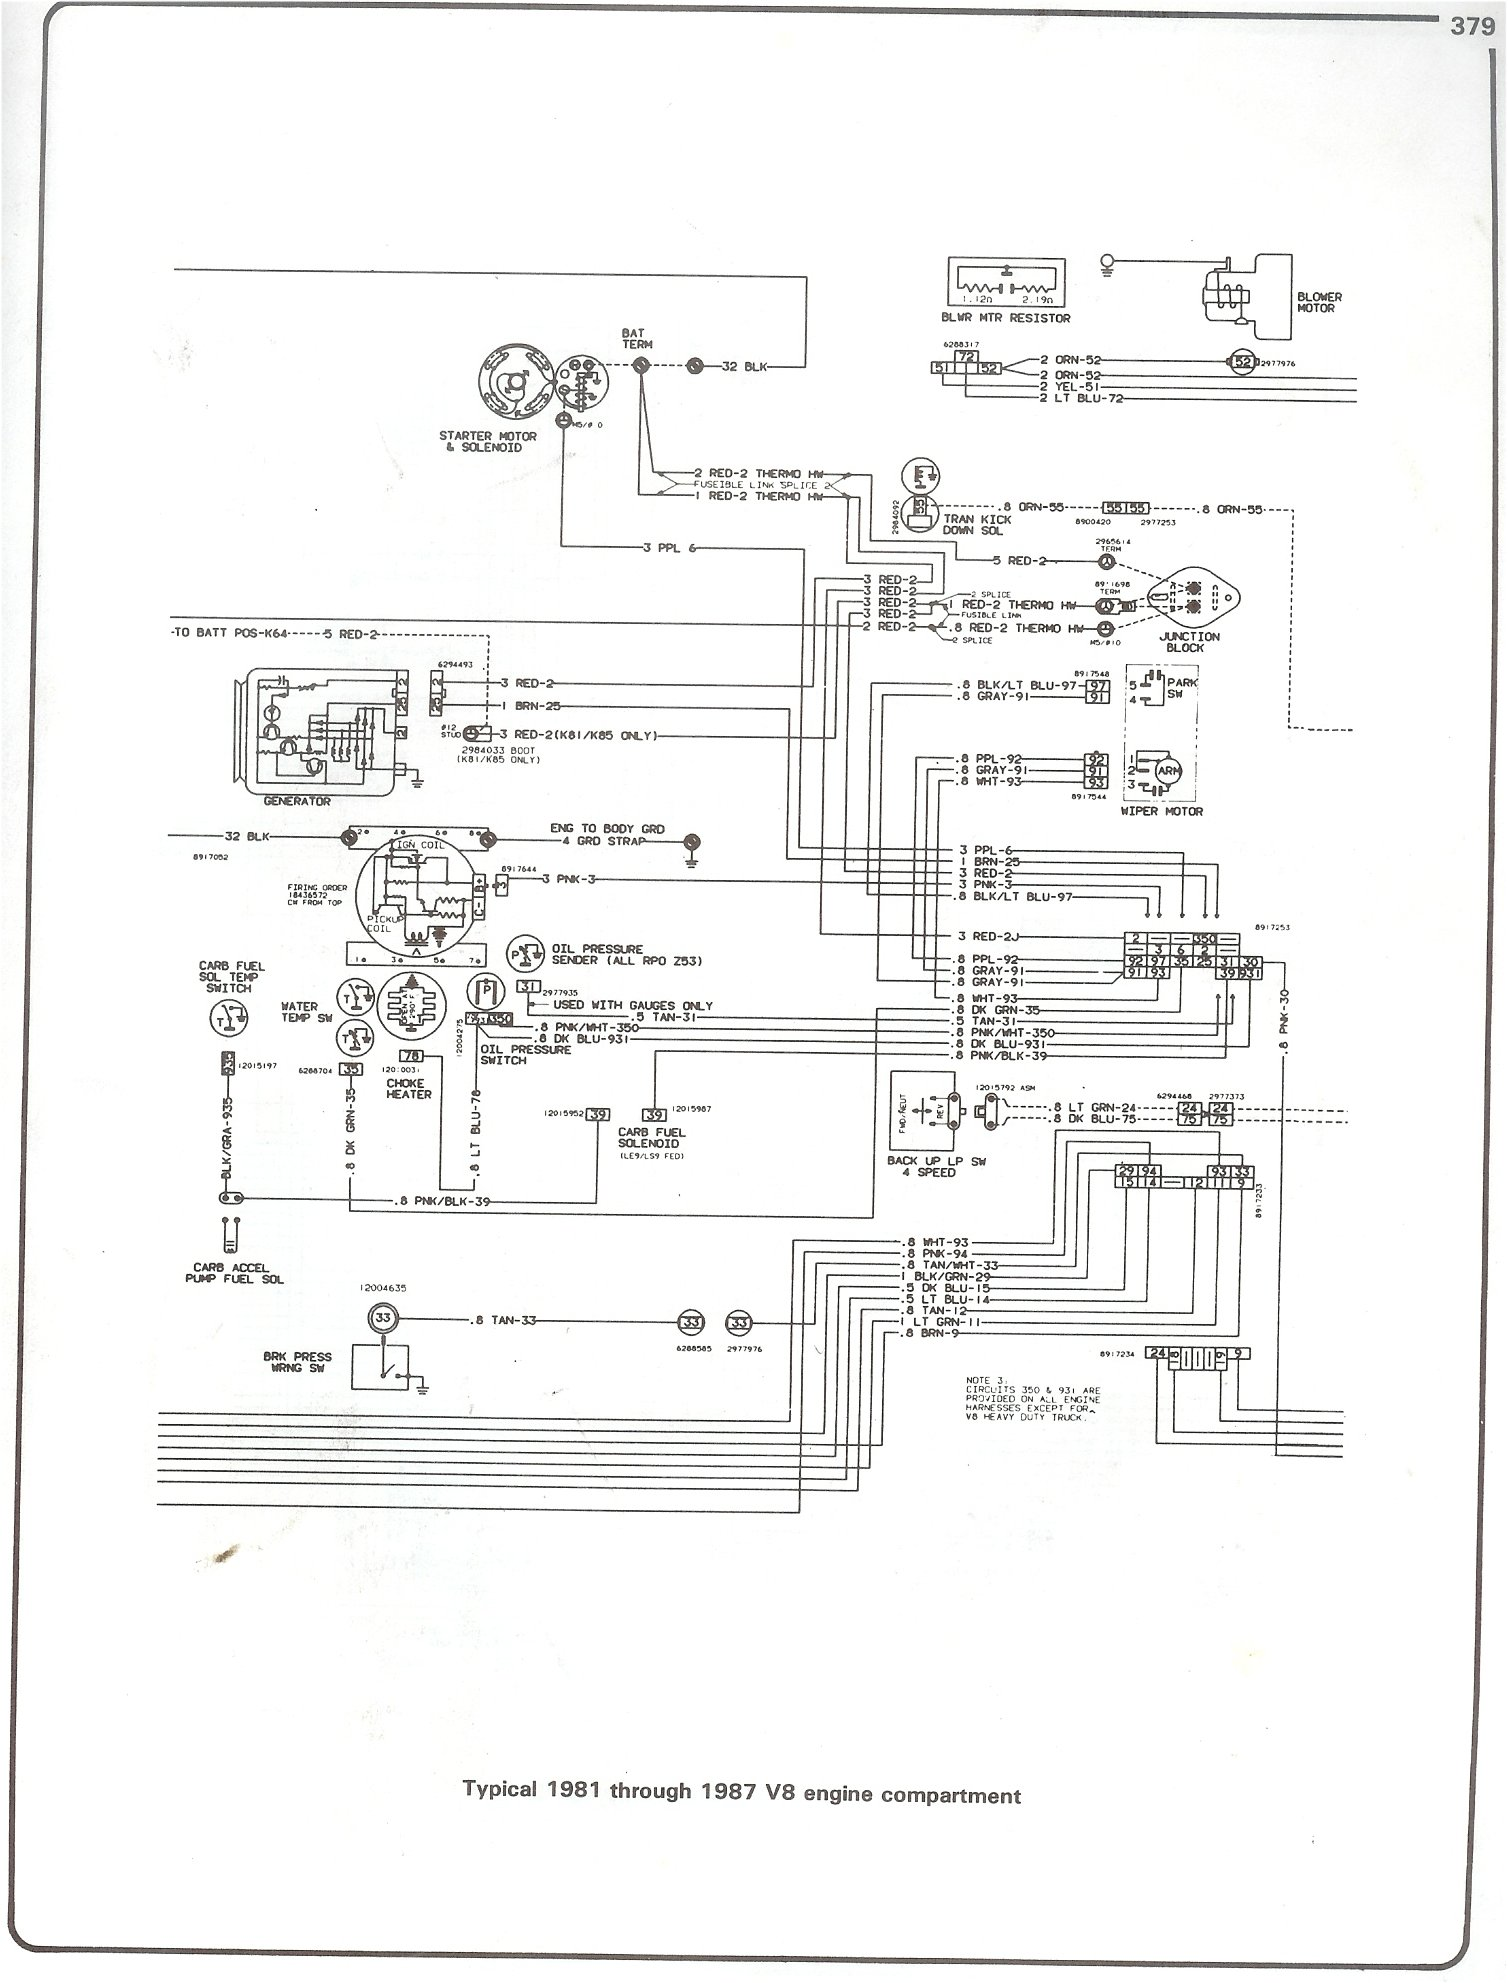 81 87_V8_engine complete 73 87 wiring diagrams 1985 chevy c10 fuse box diagram at mifinder.co